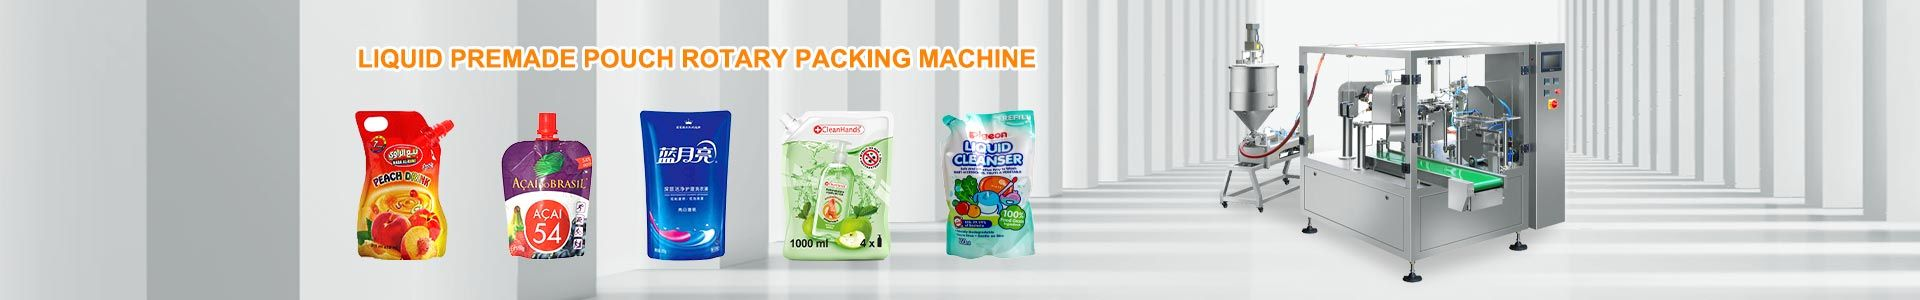 https://www.landpack.com/liquid-packaging-machine/Liquid-Premade-Pouch-Packing-Machine.html